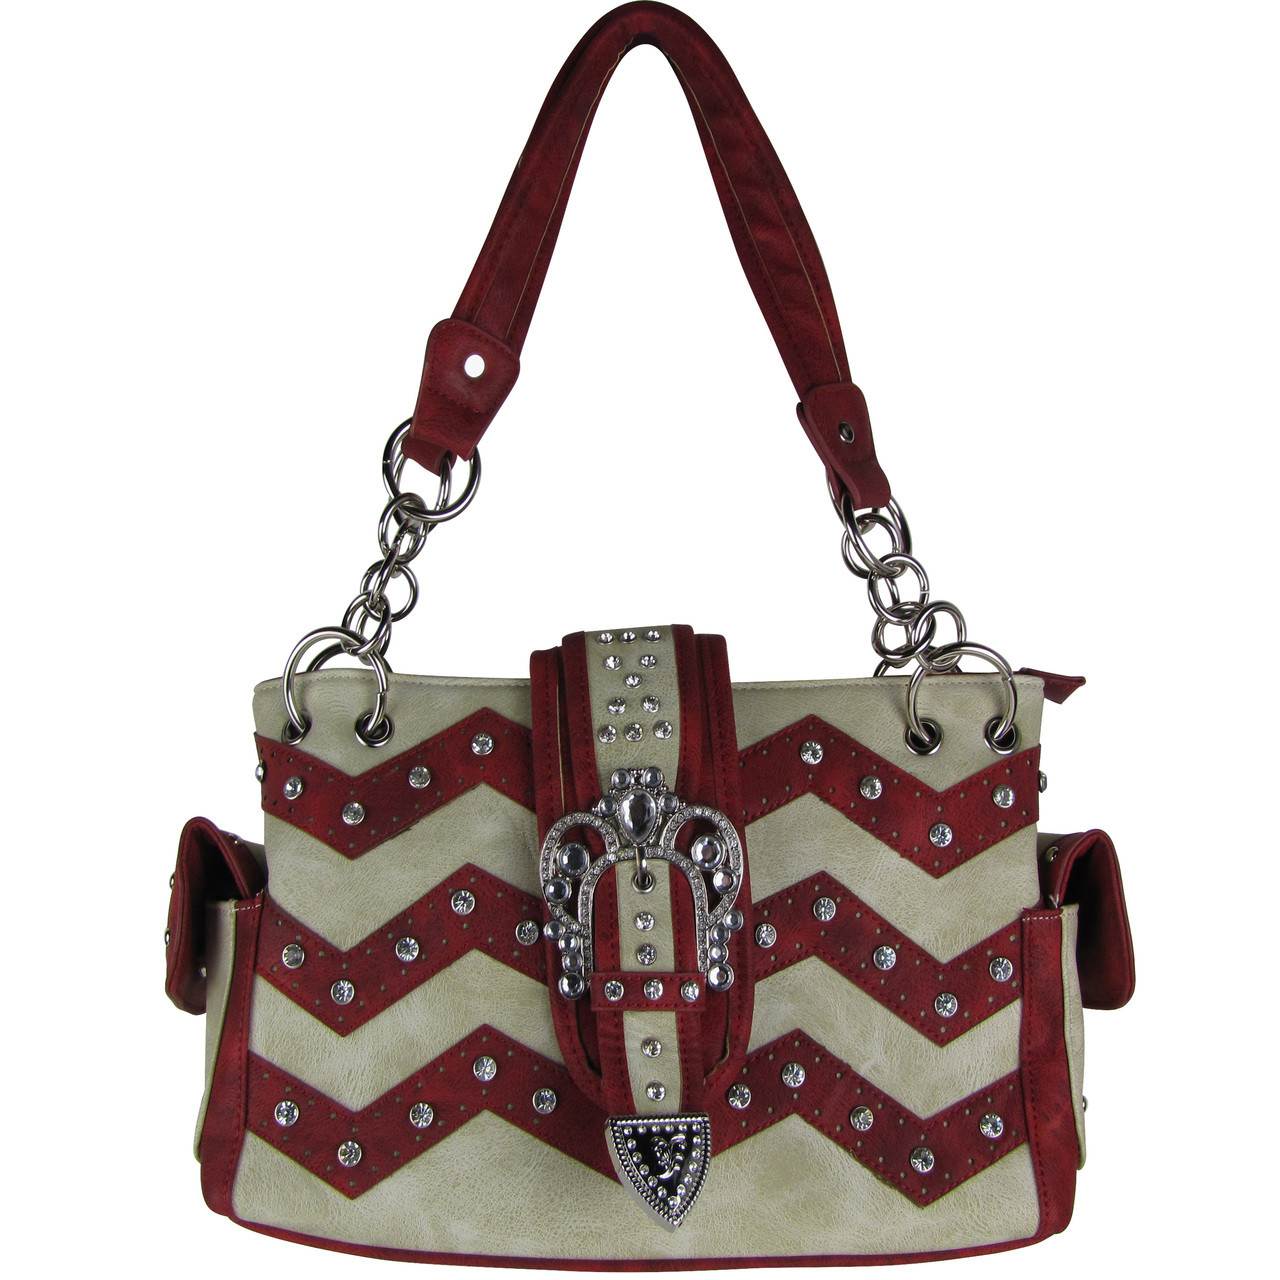 RED RHINESTONE BUCKLE LOOK SHOULDER HANDBAG HB1-939WVRED